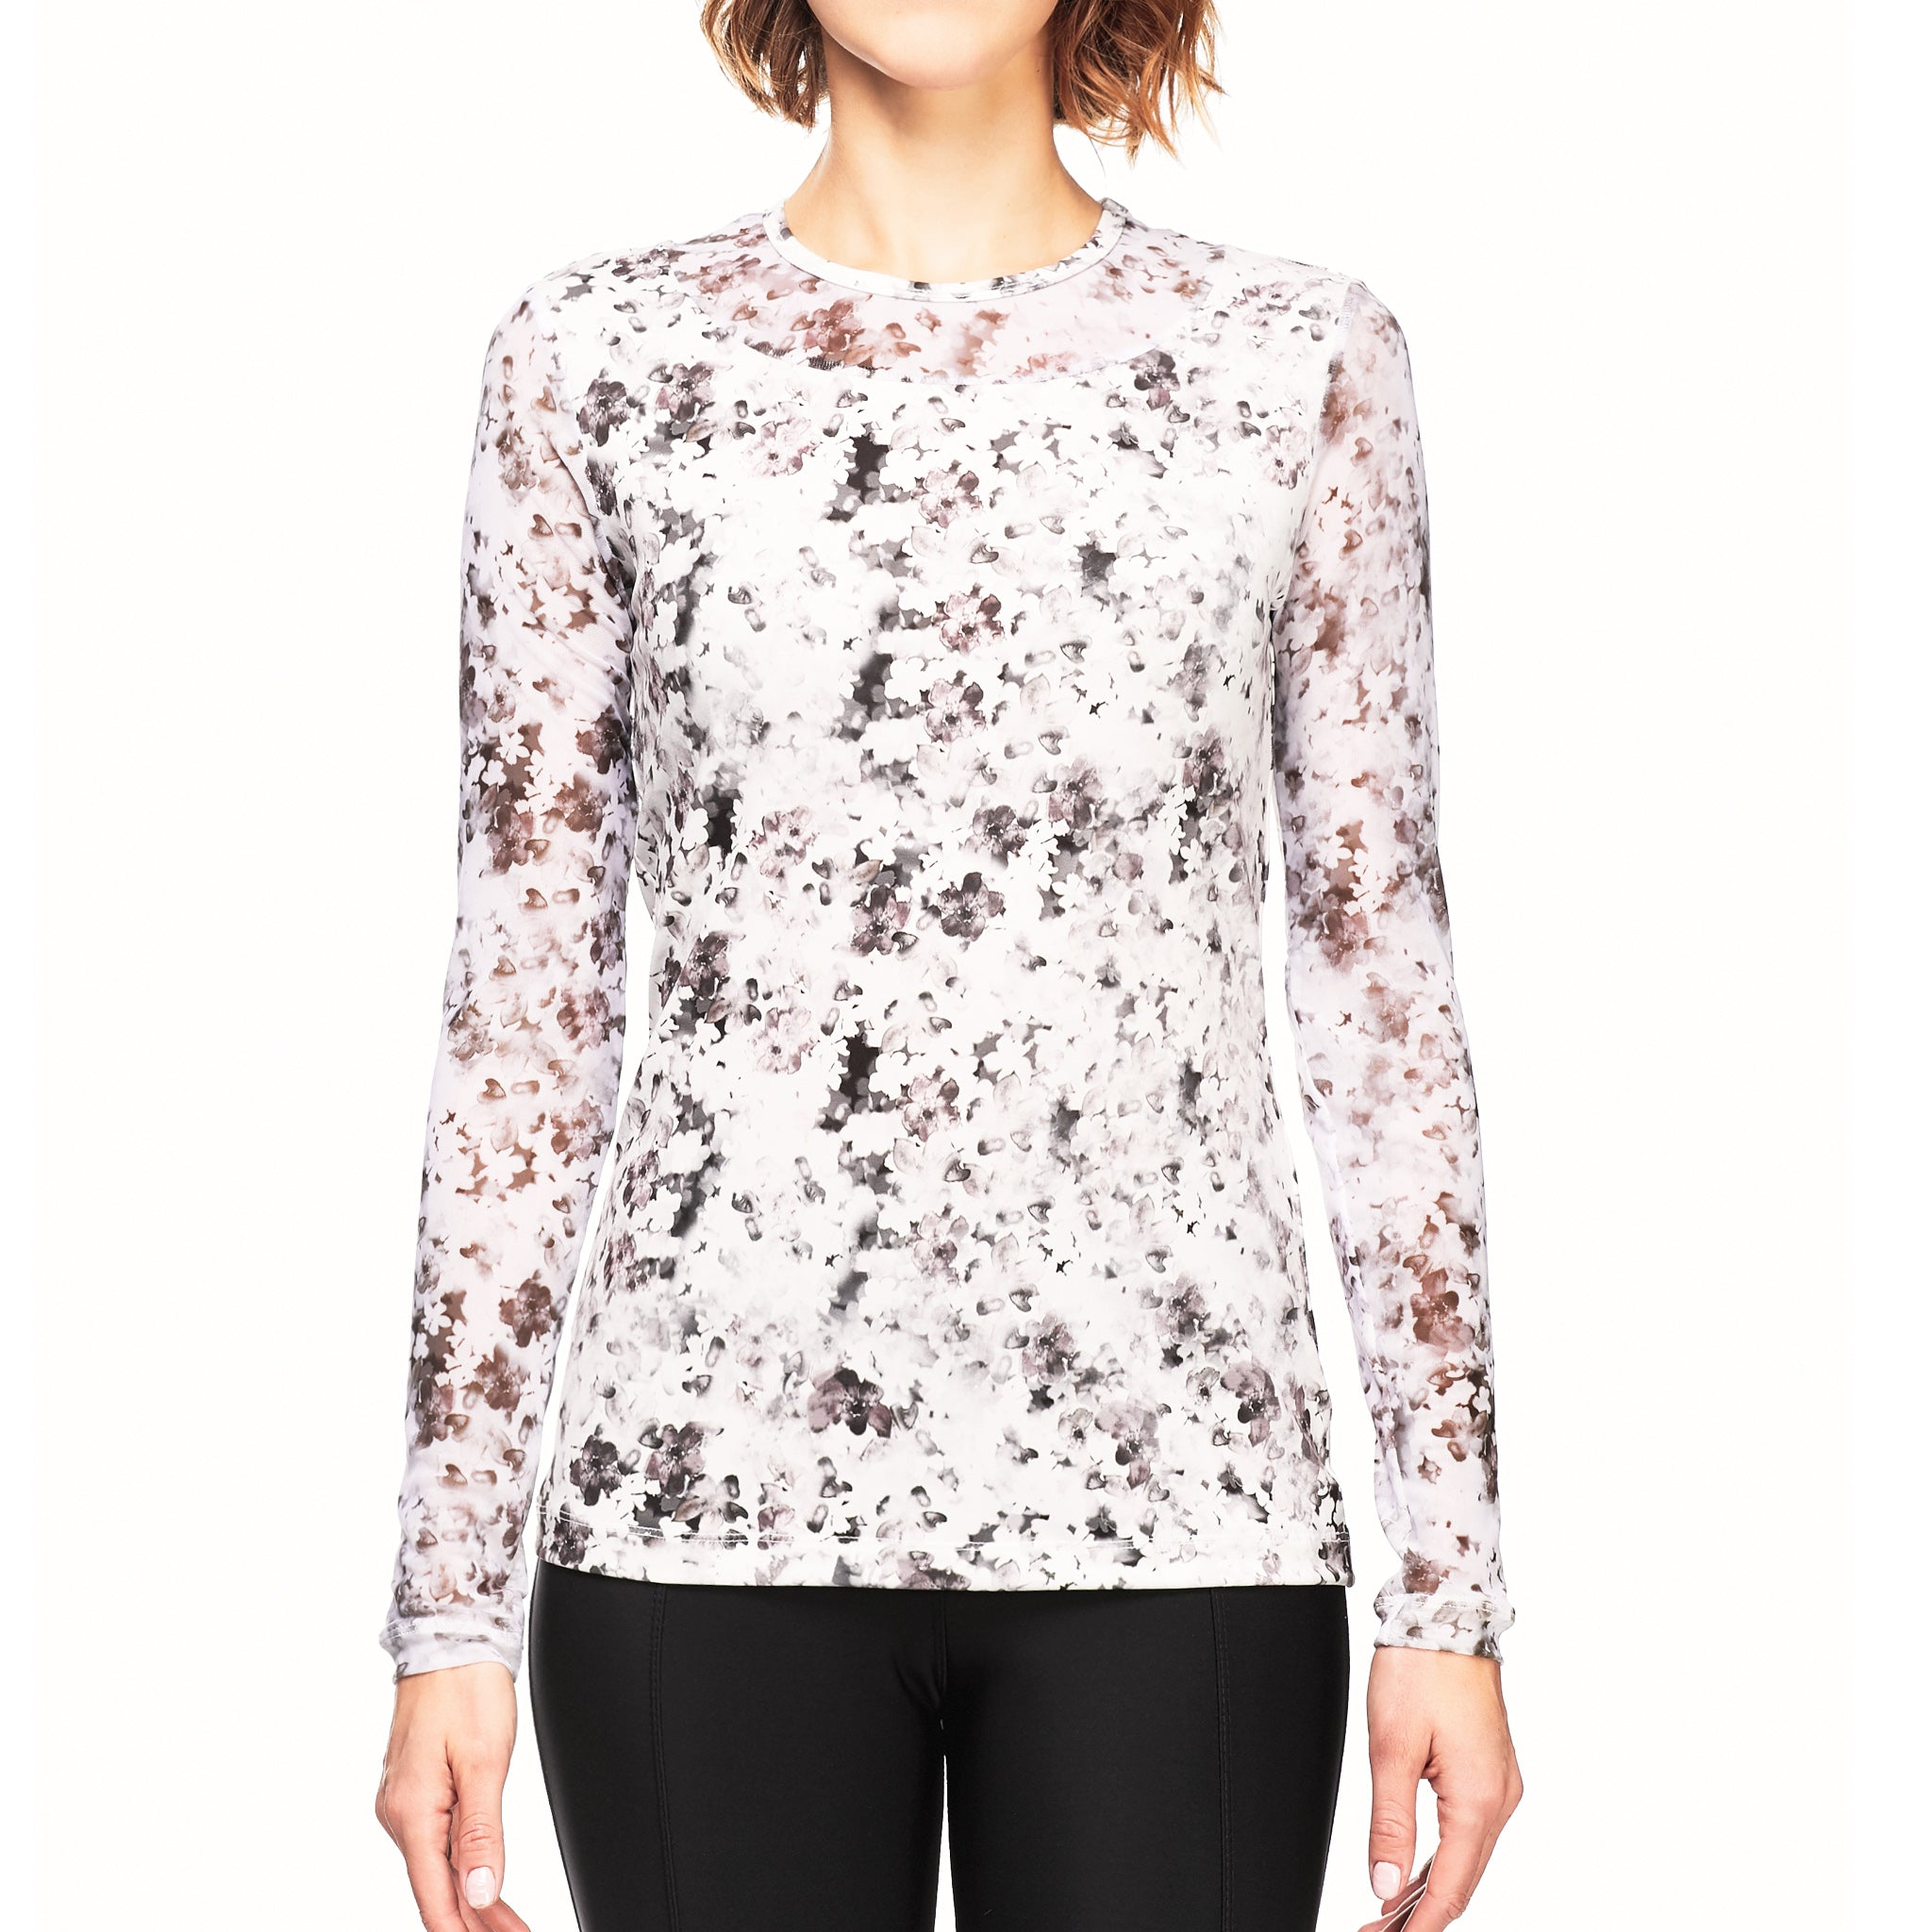 Women\'s Lightweight Kim Blossom Print Long Sleeve Top | Anatomie